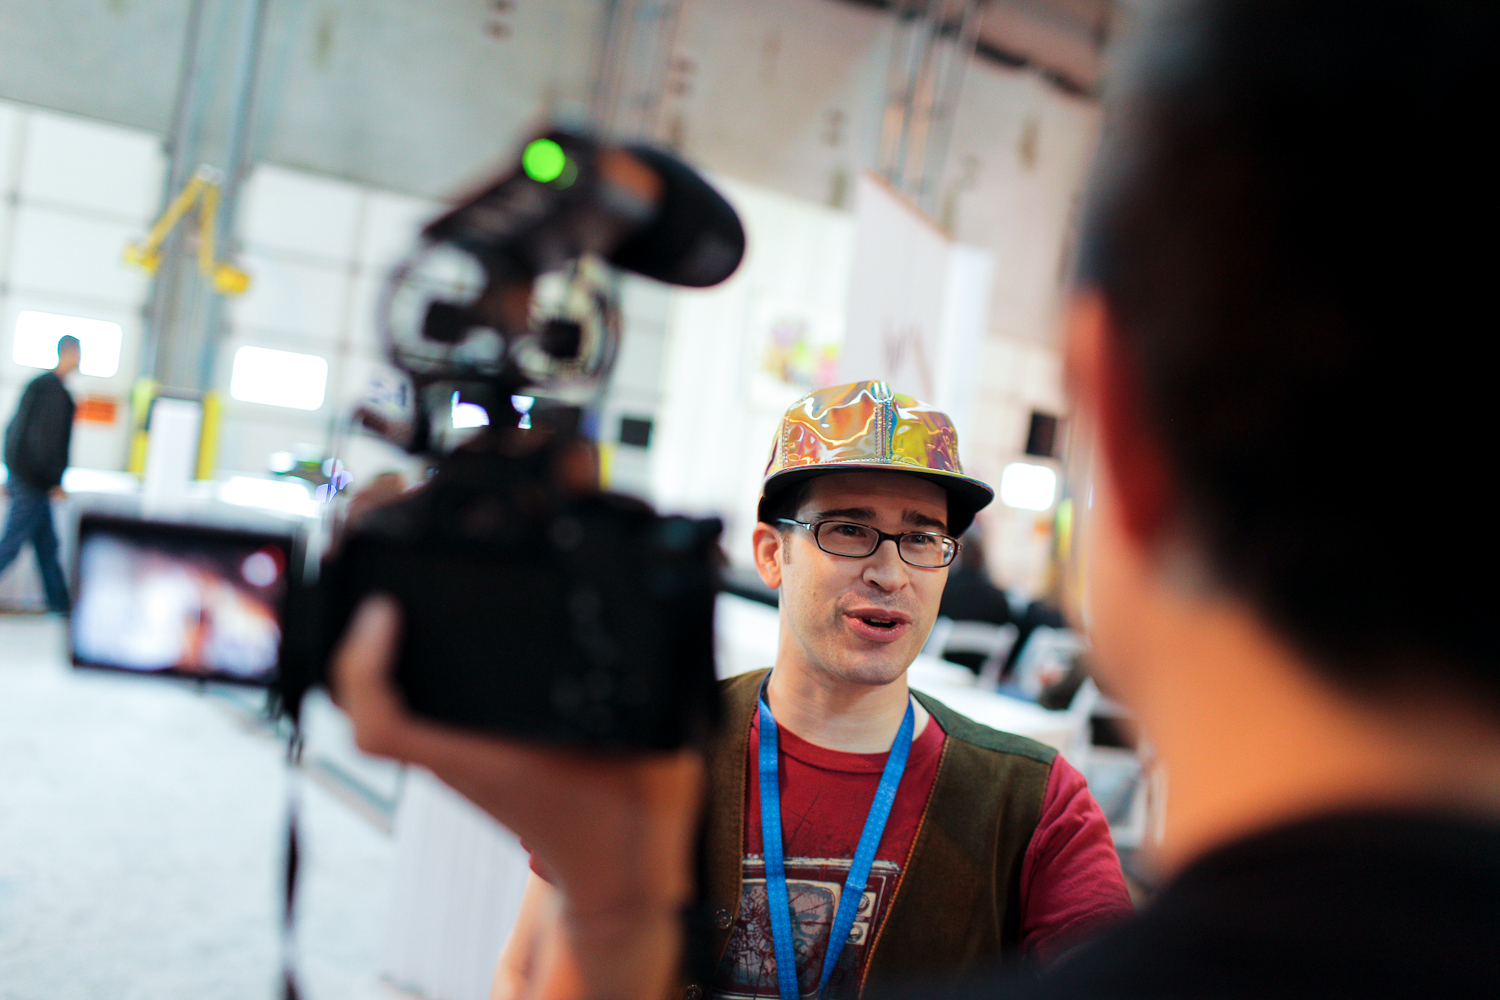 Chris Pirillo at the first ever Vlogger Fair in Seattle Saturday June 8 at the Port of Seattle Terminal 5.